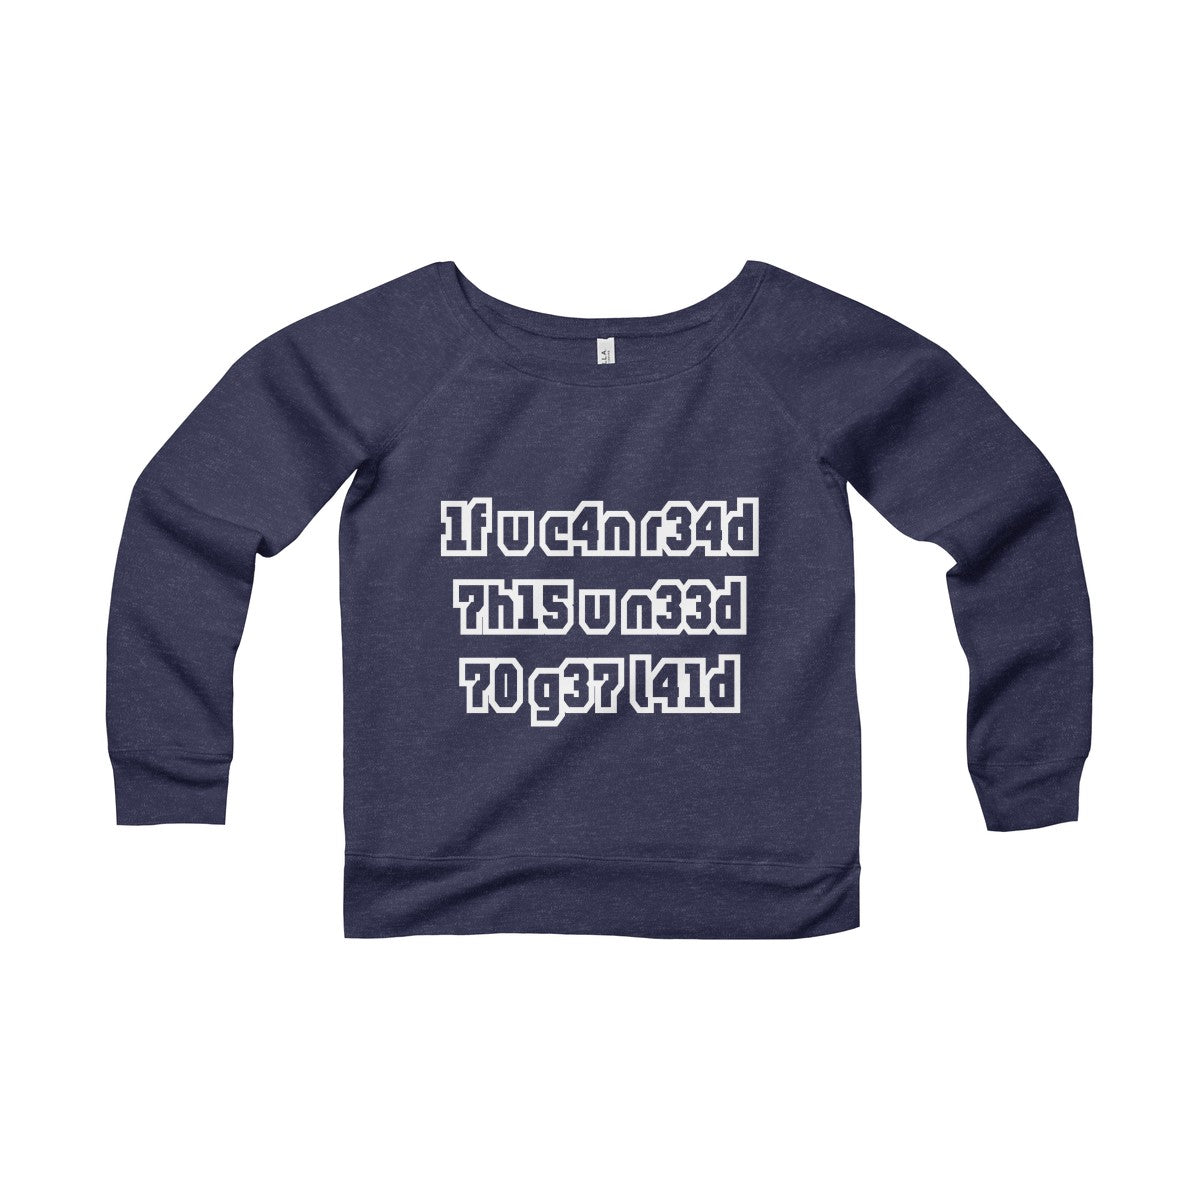 if you can read this you need to get laid women's wide-neck sweatshirt Nerdedness